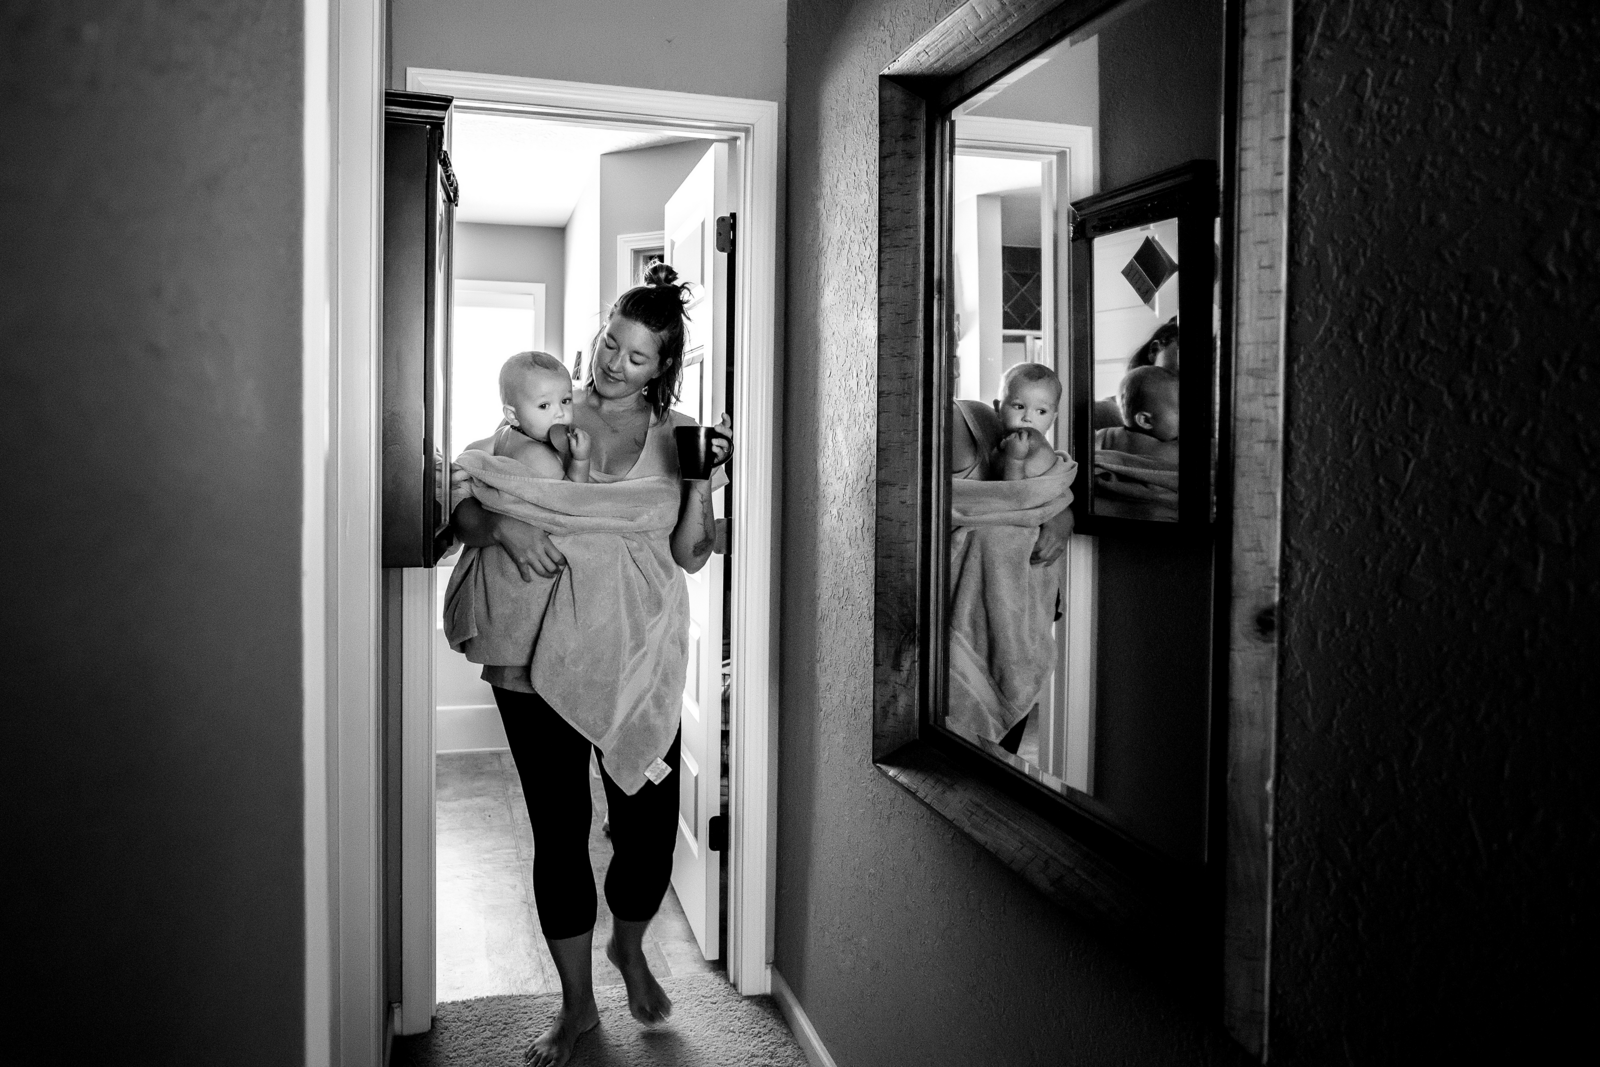 family photographer, columbus, ga, atlanta, documentary, photojournalism, baby in towel after bath_1728-2